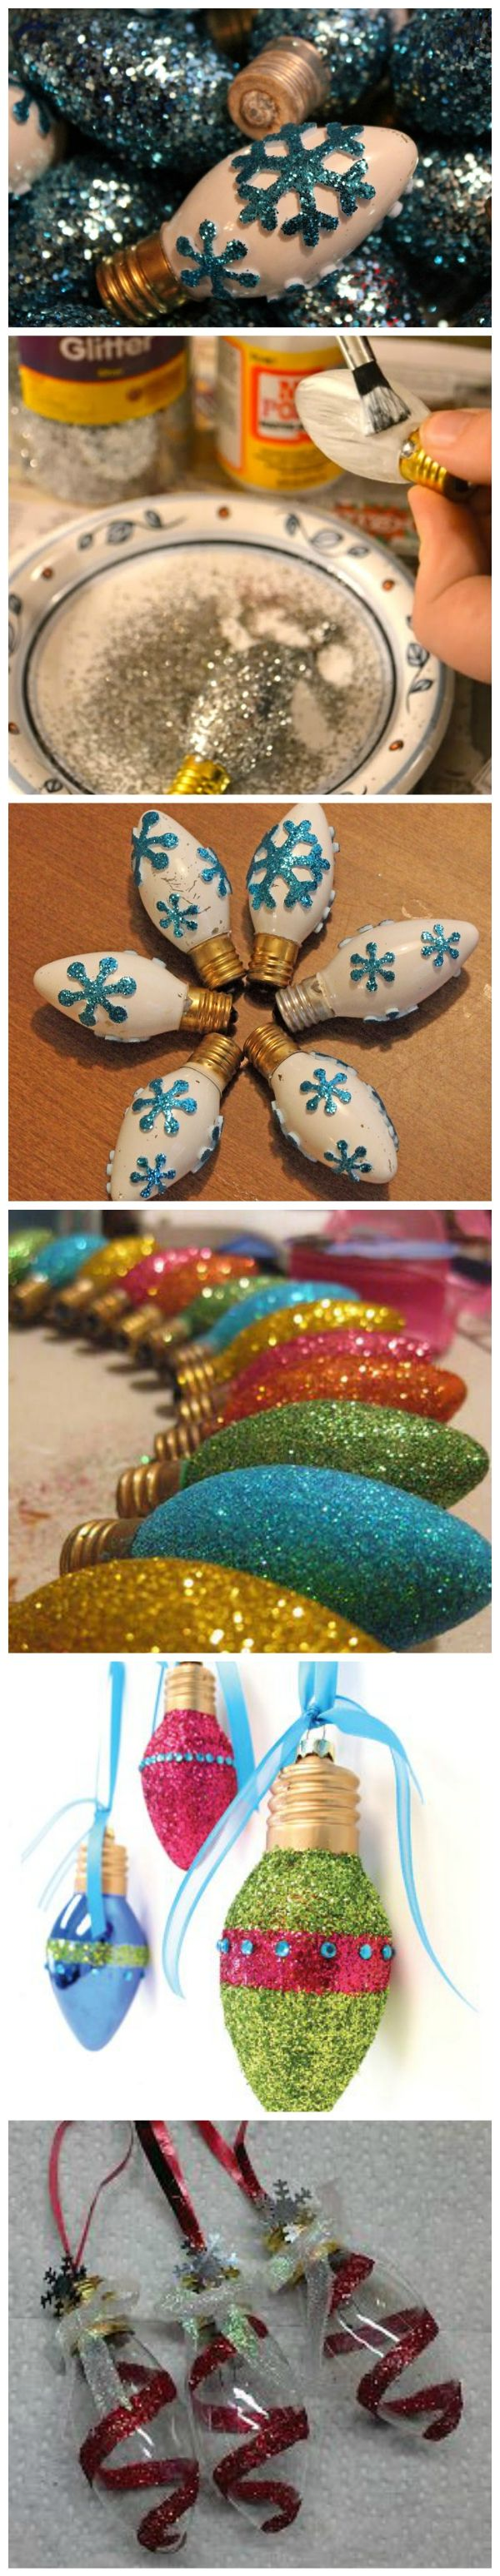 DIY Glittered Christmas Light Bulb Ornaments